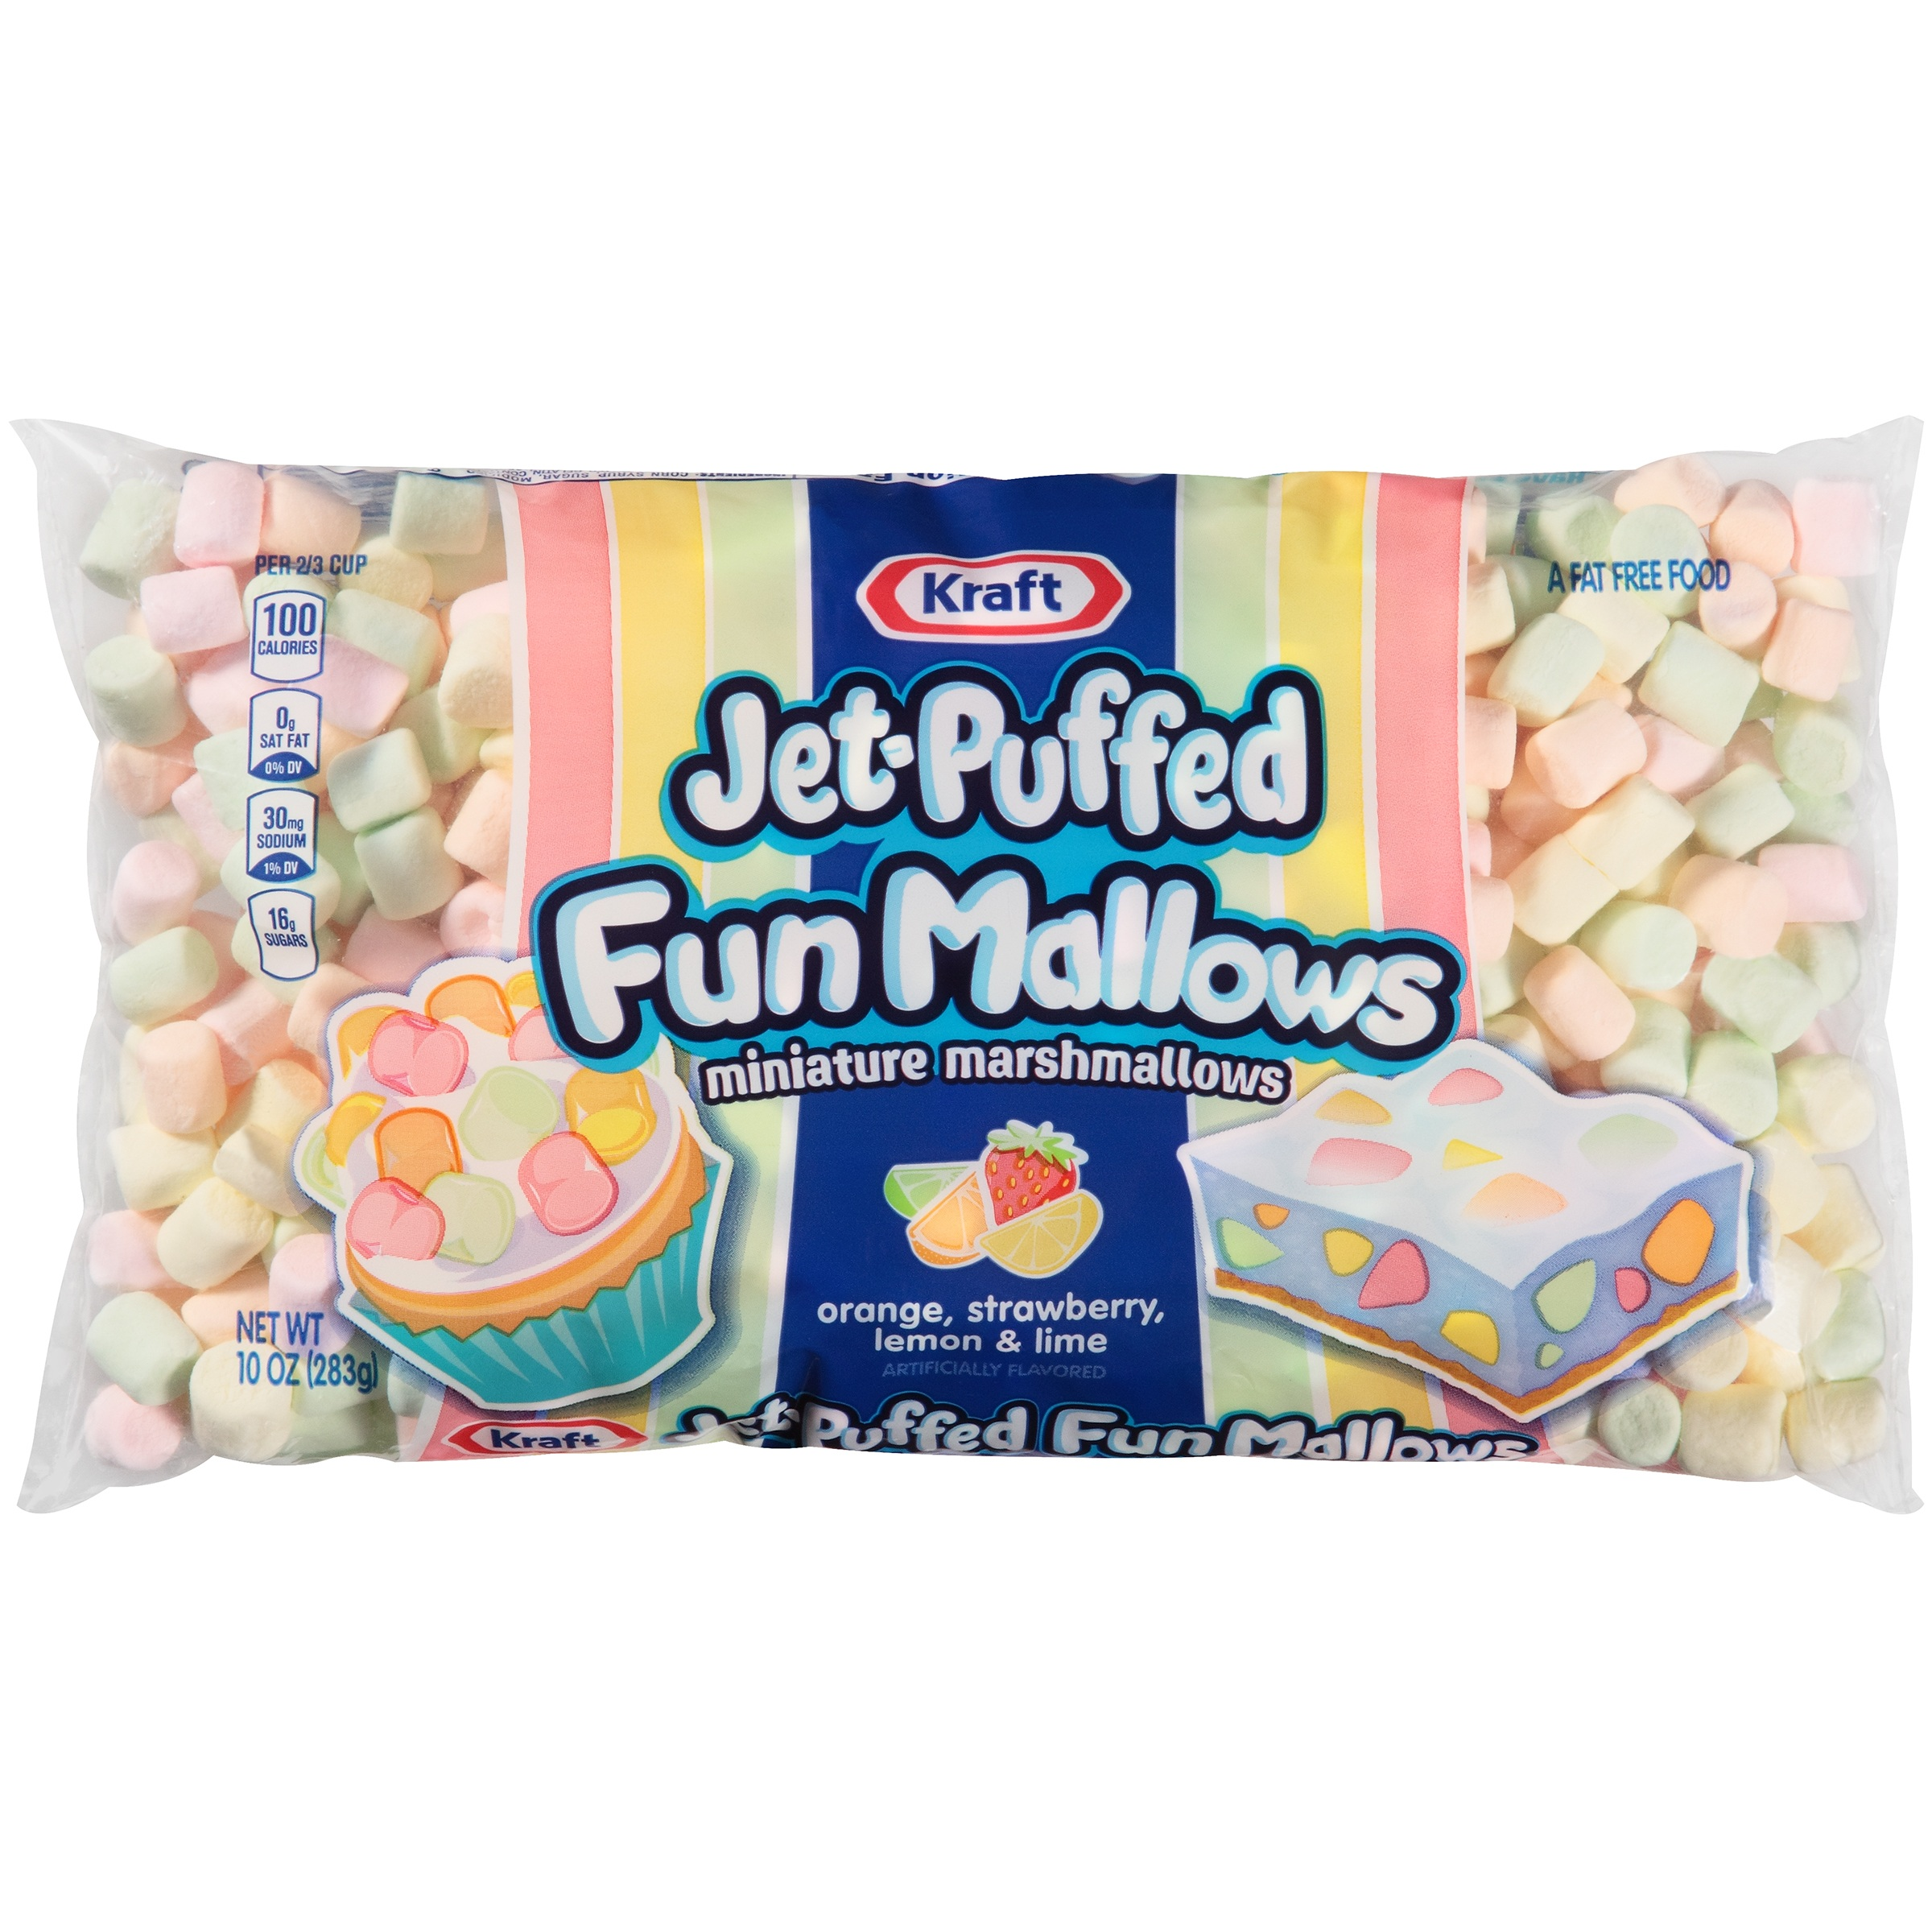 Kraft Jet-Puffed FunMallows Miniature Marshmallows 10 oz. Bag